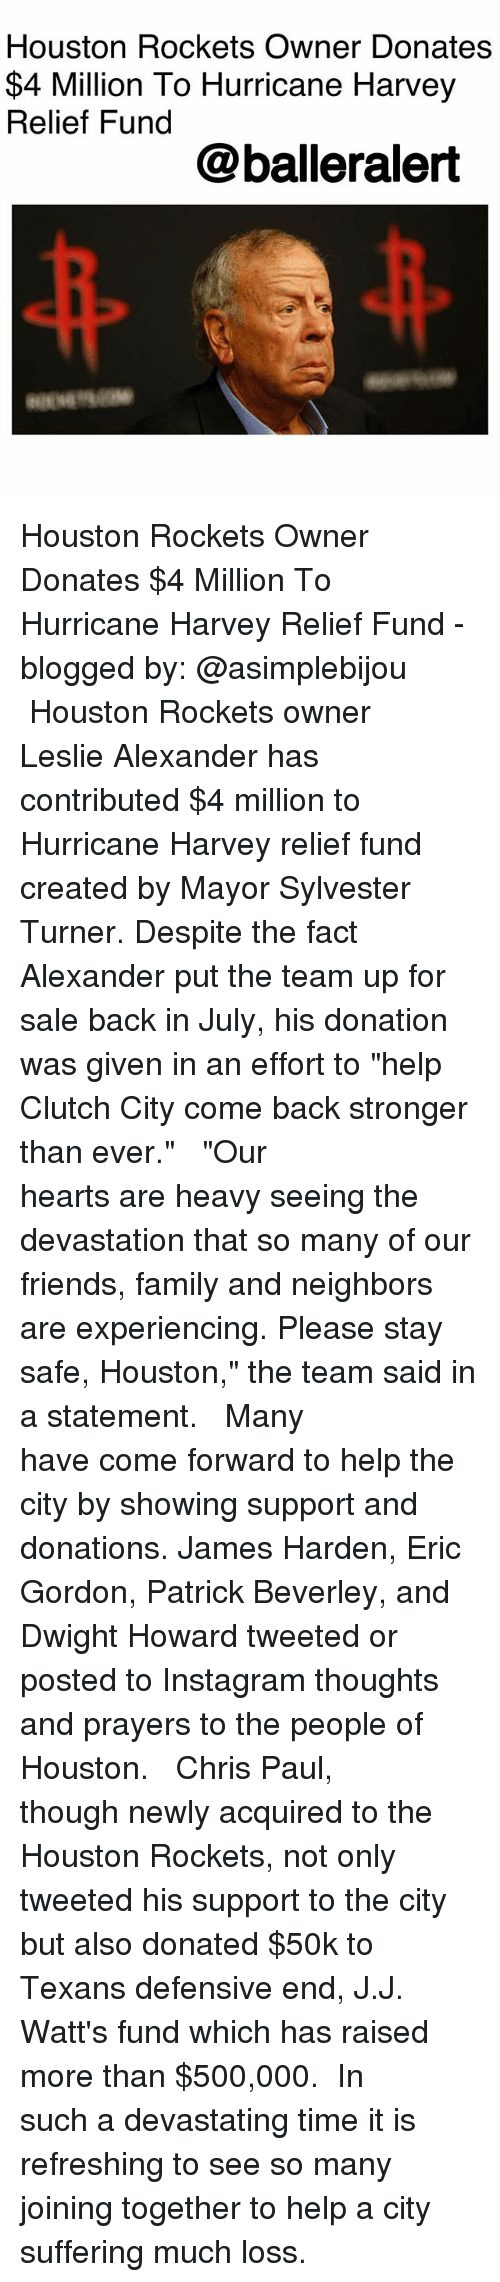 "Saled: Houston Rockets Owner Donates  $4 Million To Hurricane Harvey  Relief Fund  @balleralert Houston Rockets Owner Donates $4 Million To Hurricane Harvey Relief Fund - blogged by: @asimplebijou ⠀⠀⠀⠀⠀⠀⠀ ⠀⠀⠀⠀⠀⠀⠀ Houston Rockets owner Leslie Alexander has contributed $4 million to Hurricane Harvey relief fund created by Mayor Sylvester Turner. Despite the fact Alexander put the team up for sale back in July, his donation was given in an effort to ""help Clutch City come back stronger than ever."" ⠀⠀⠀⠀⠀⠀⠀ ⠀⠀⠀⠀⠀⠀⠀ ""Our hearts are heavy seeing the devastation that so many of our friends, family and neighbors are experiencing. Please stay safe, Houston,"" the team said in a statement. ⠀⠀⠀⠀⠀⠀⠀ ⠀⠀⠀⠀⠀⠀⠀ Many have come forward to help the city by showing support and donations. James Harden, Eric Gordon, Patrick Beverley, and Dwight Howard tweeted or posted to Instagram thoughts and prayers to the people of Houston. ⠀⠀⠀⠀⠀⠀⠀ ⠀⠀⠀⠀⠀⠀⠀ Chris Paul, though newly acquired to the Houston Rockets, not only tweeted his support to the city but also donated $50k to Texans defensive end, J.J. Watt's fund which has raised more than $500,000. ⠀⠀⠀⠀⠀⠀⠀ In such a devastating time it is refreshing to see so many joining together to help a city suffering much loss."